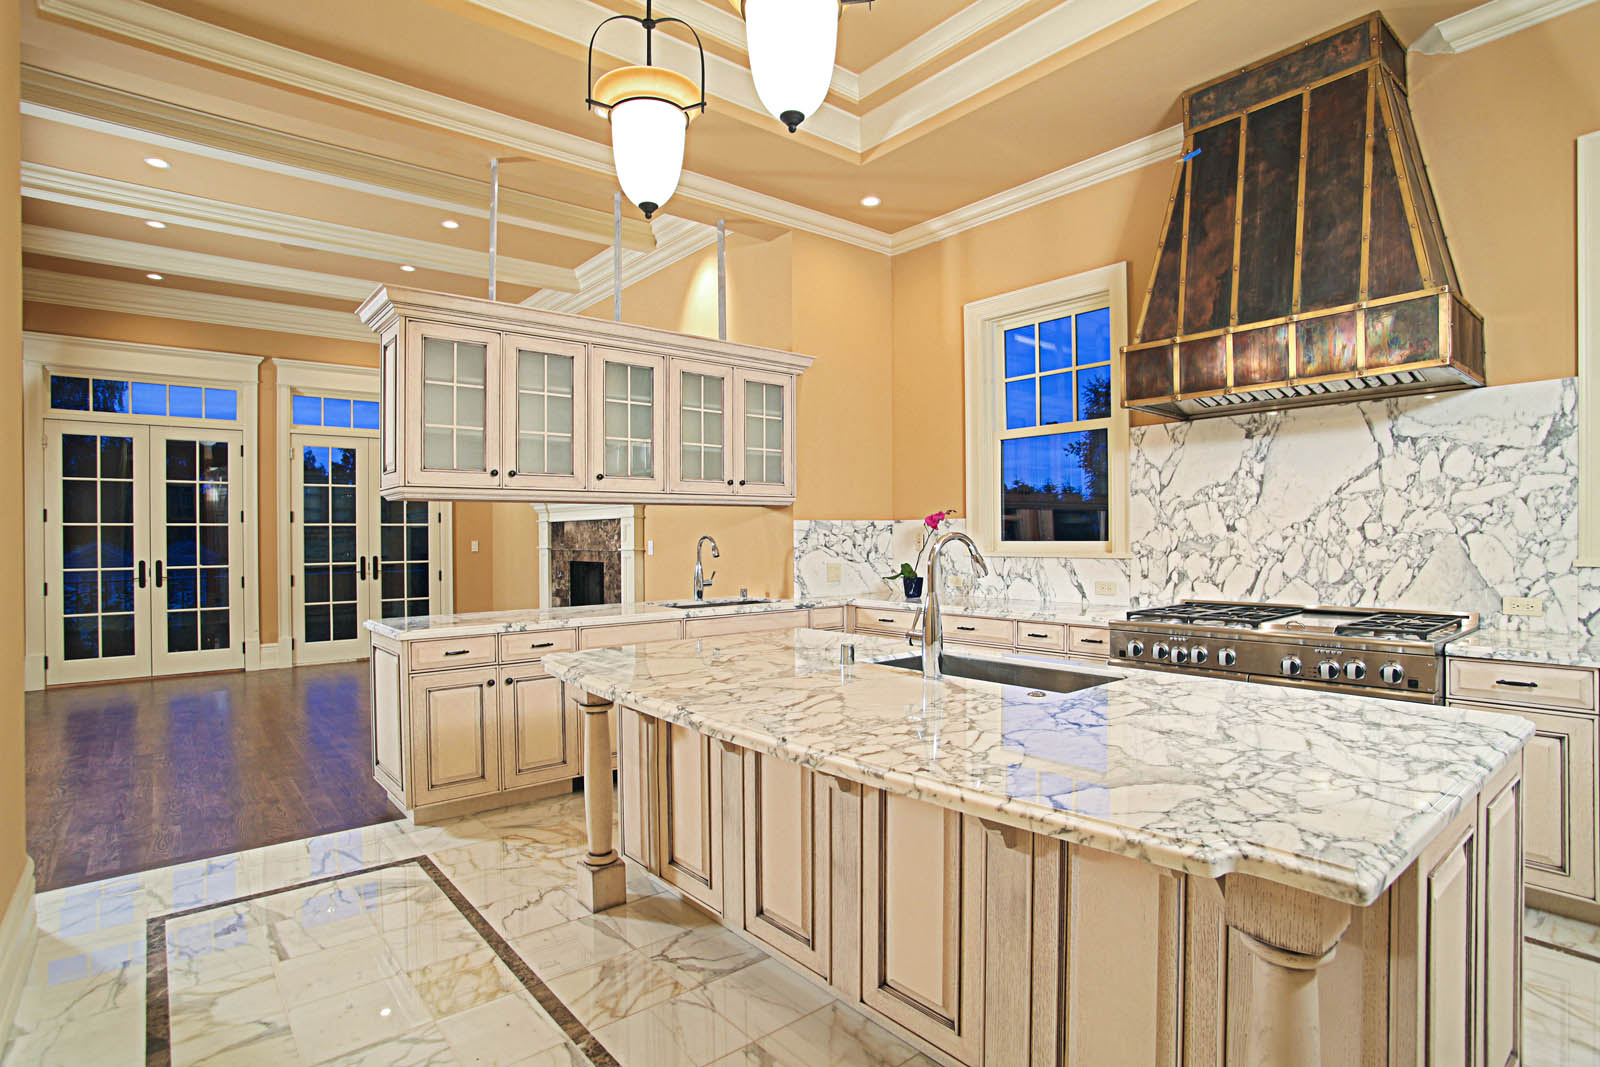 Kitchen Floors Gallery Seattle Tile Contractor Irc Tile Services